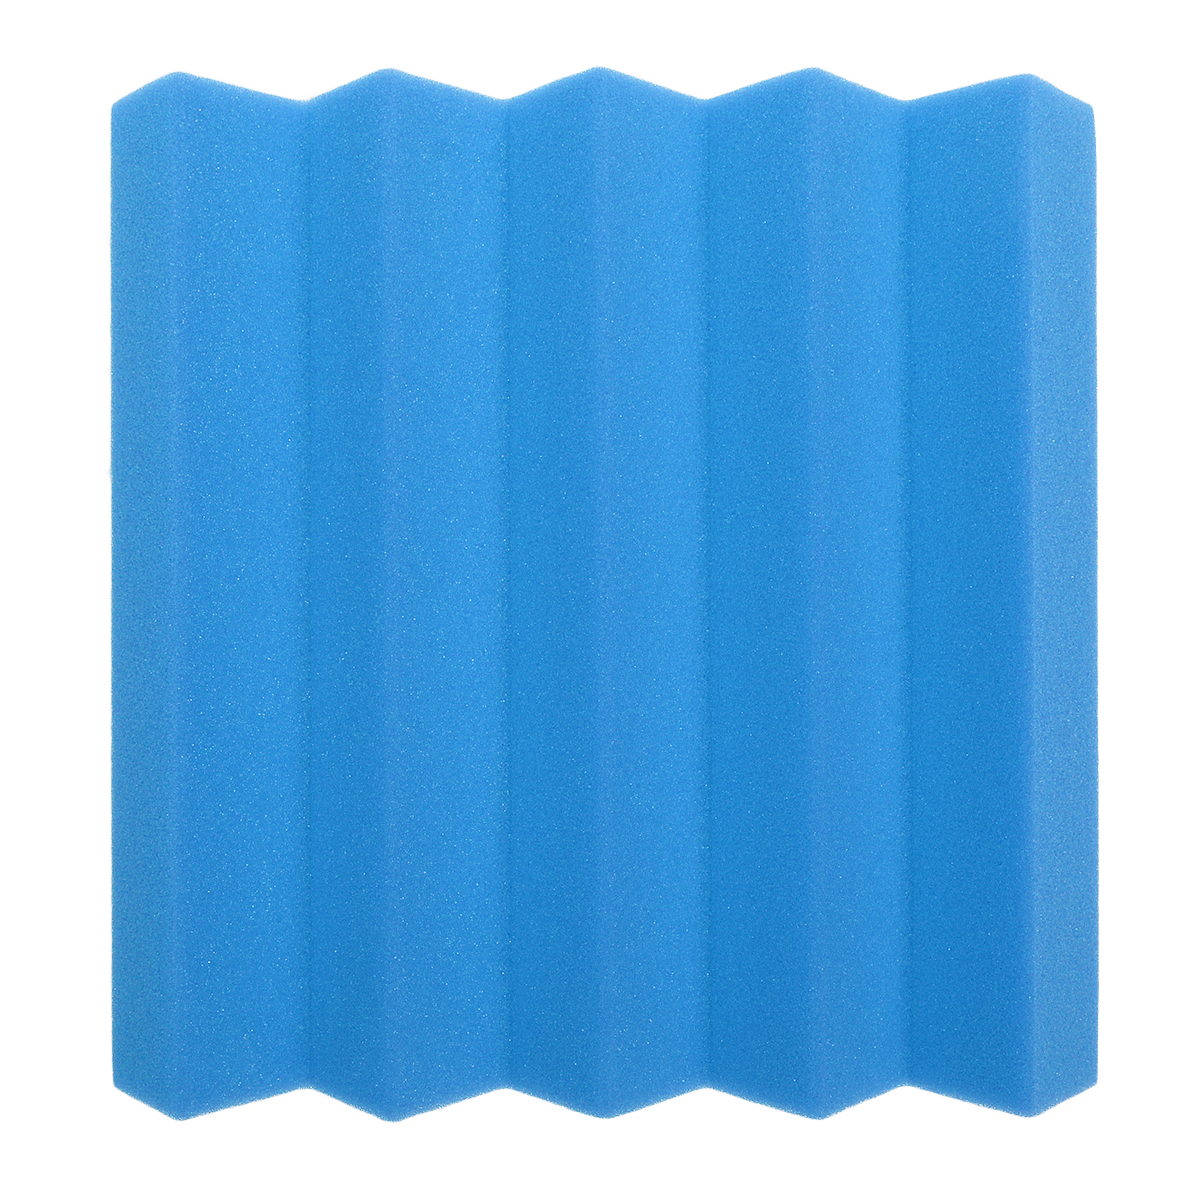 6Pcs 25x25x5cm Acoustic Wedge Foam Tile Sound Absorption Panel Soundproof